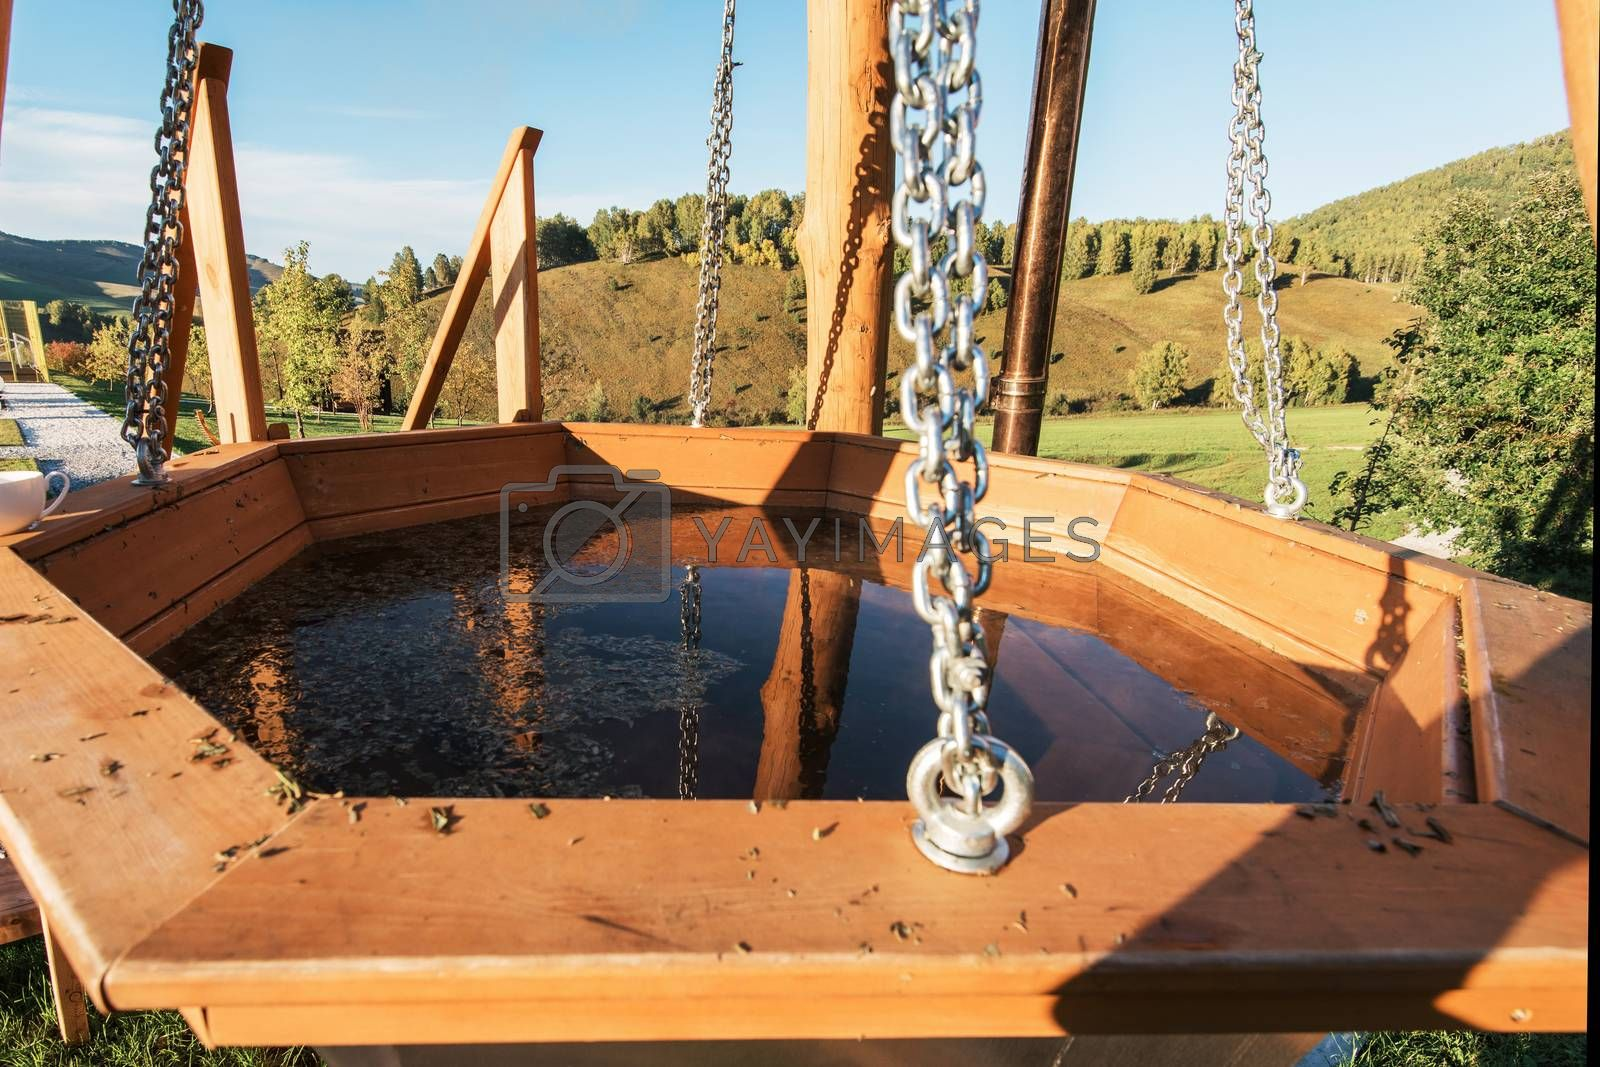 Big vat with hot water and herbs for bathing, spa and relax. Outdoor in Altai mountains, Siberia, Russia